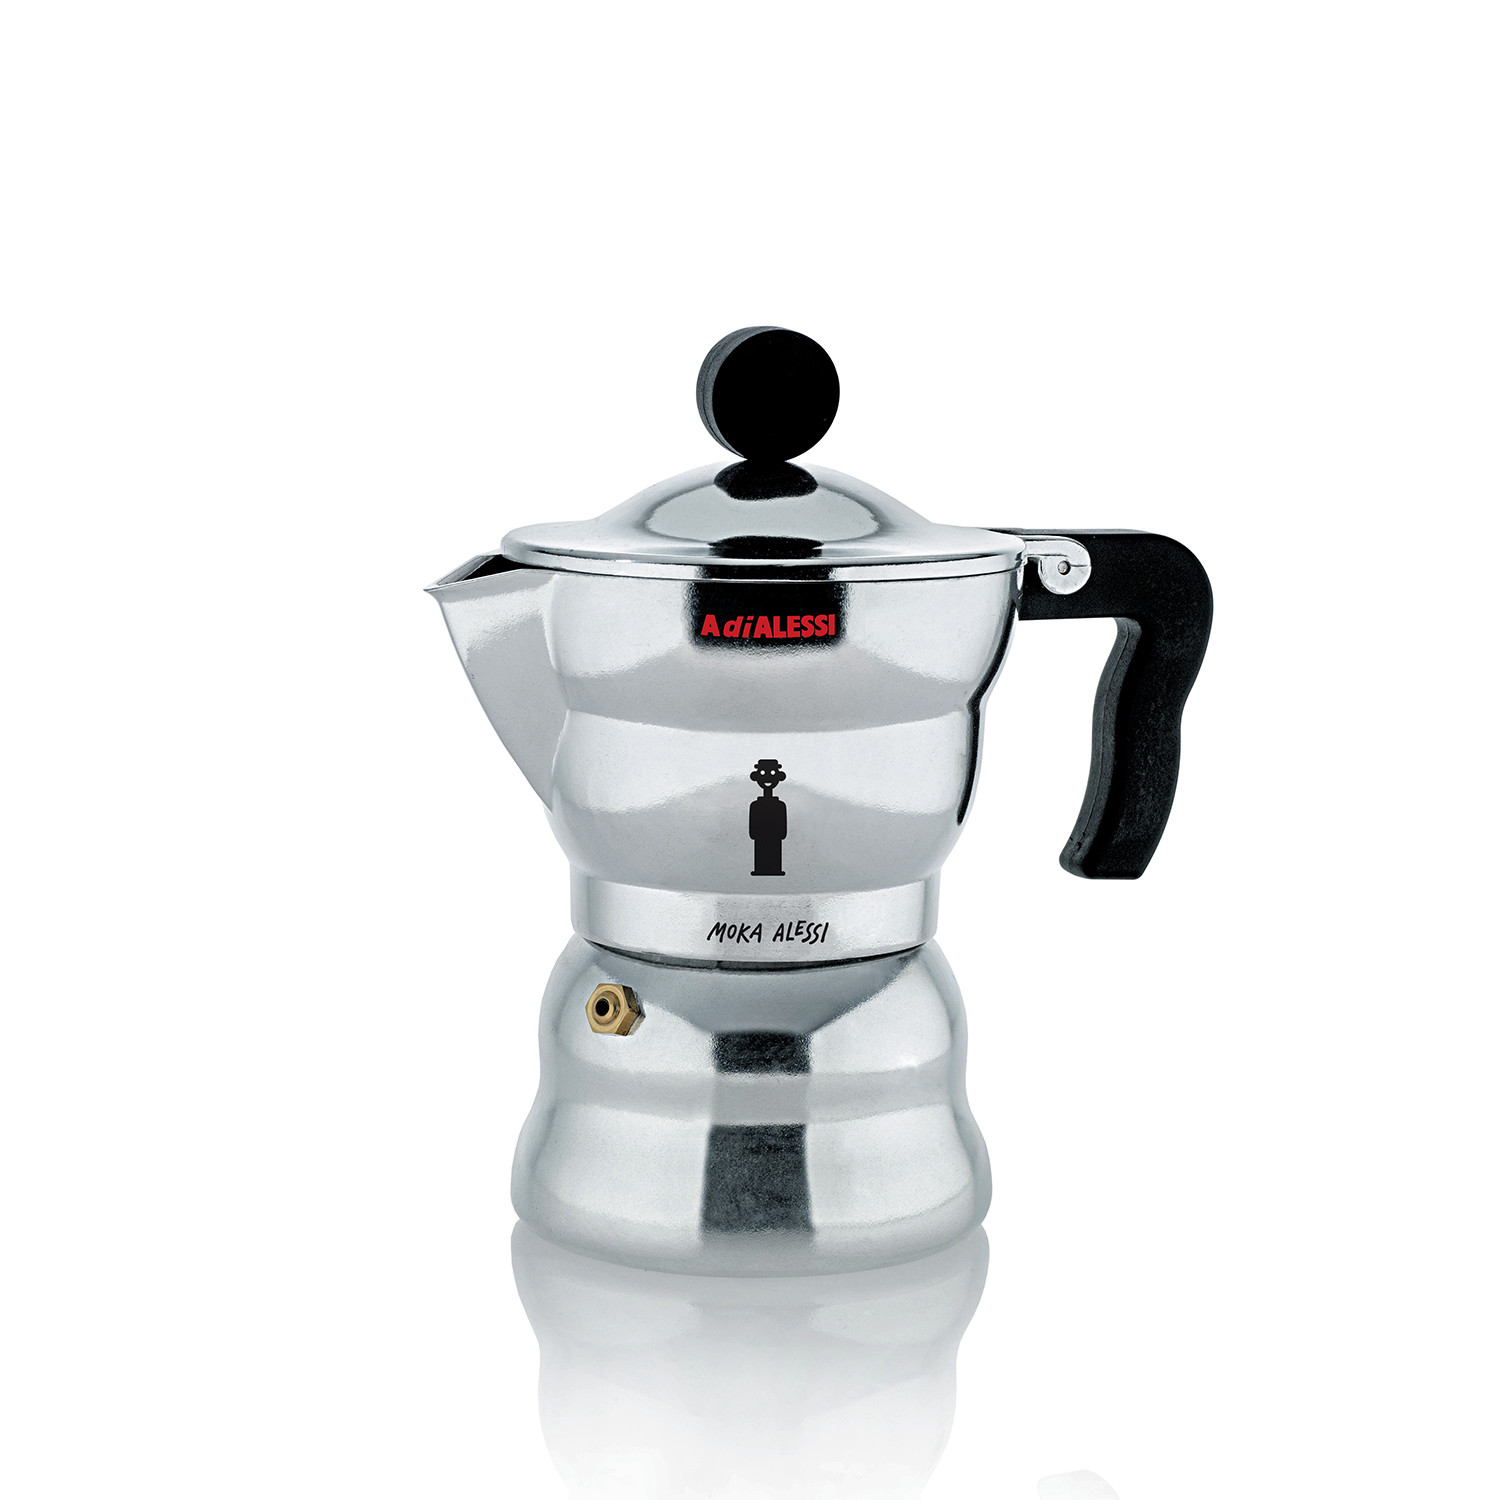 Marvelous Moka Alessi Espresso Coffee Maker (3 Cup) Ideas